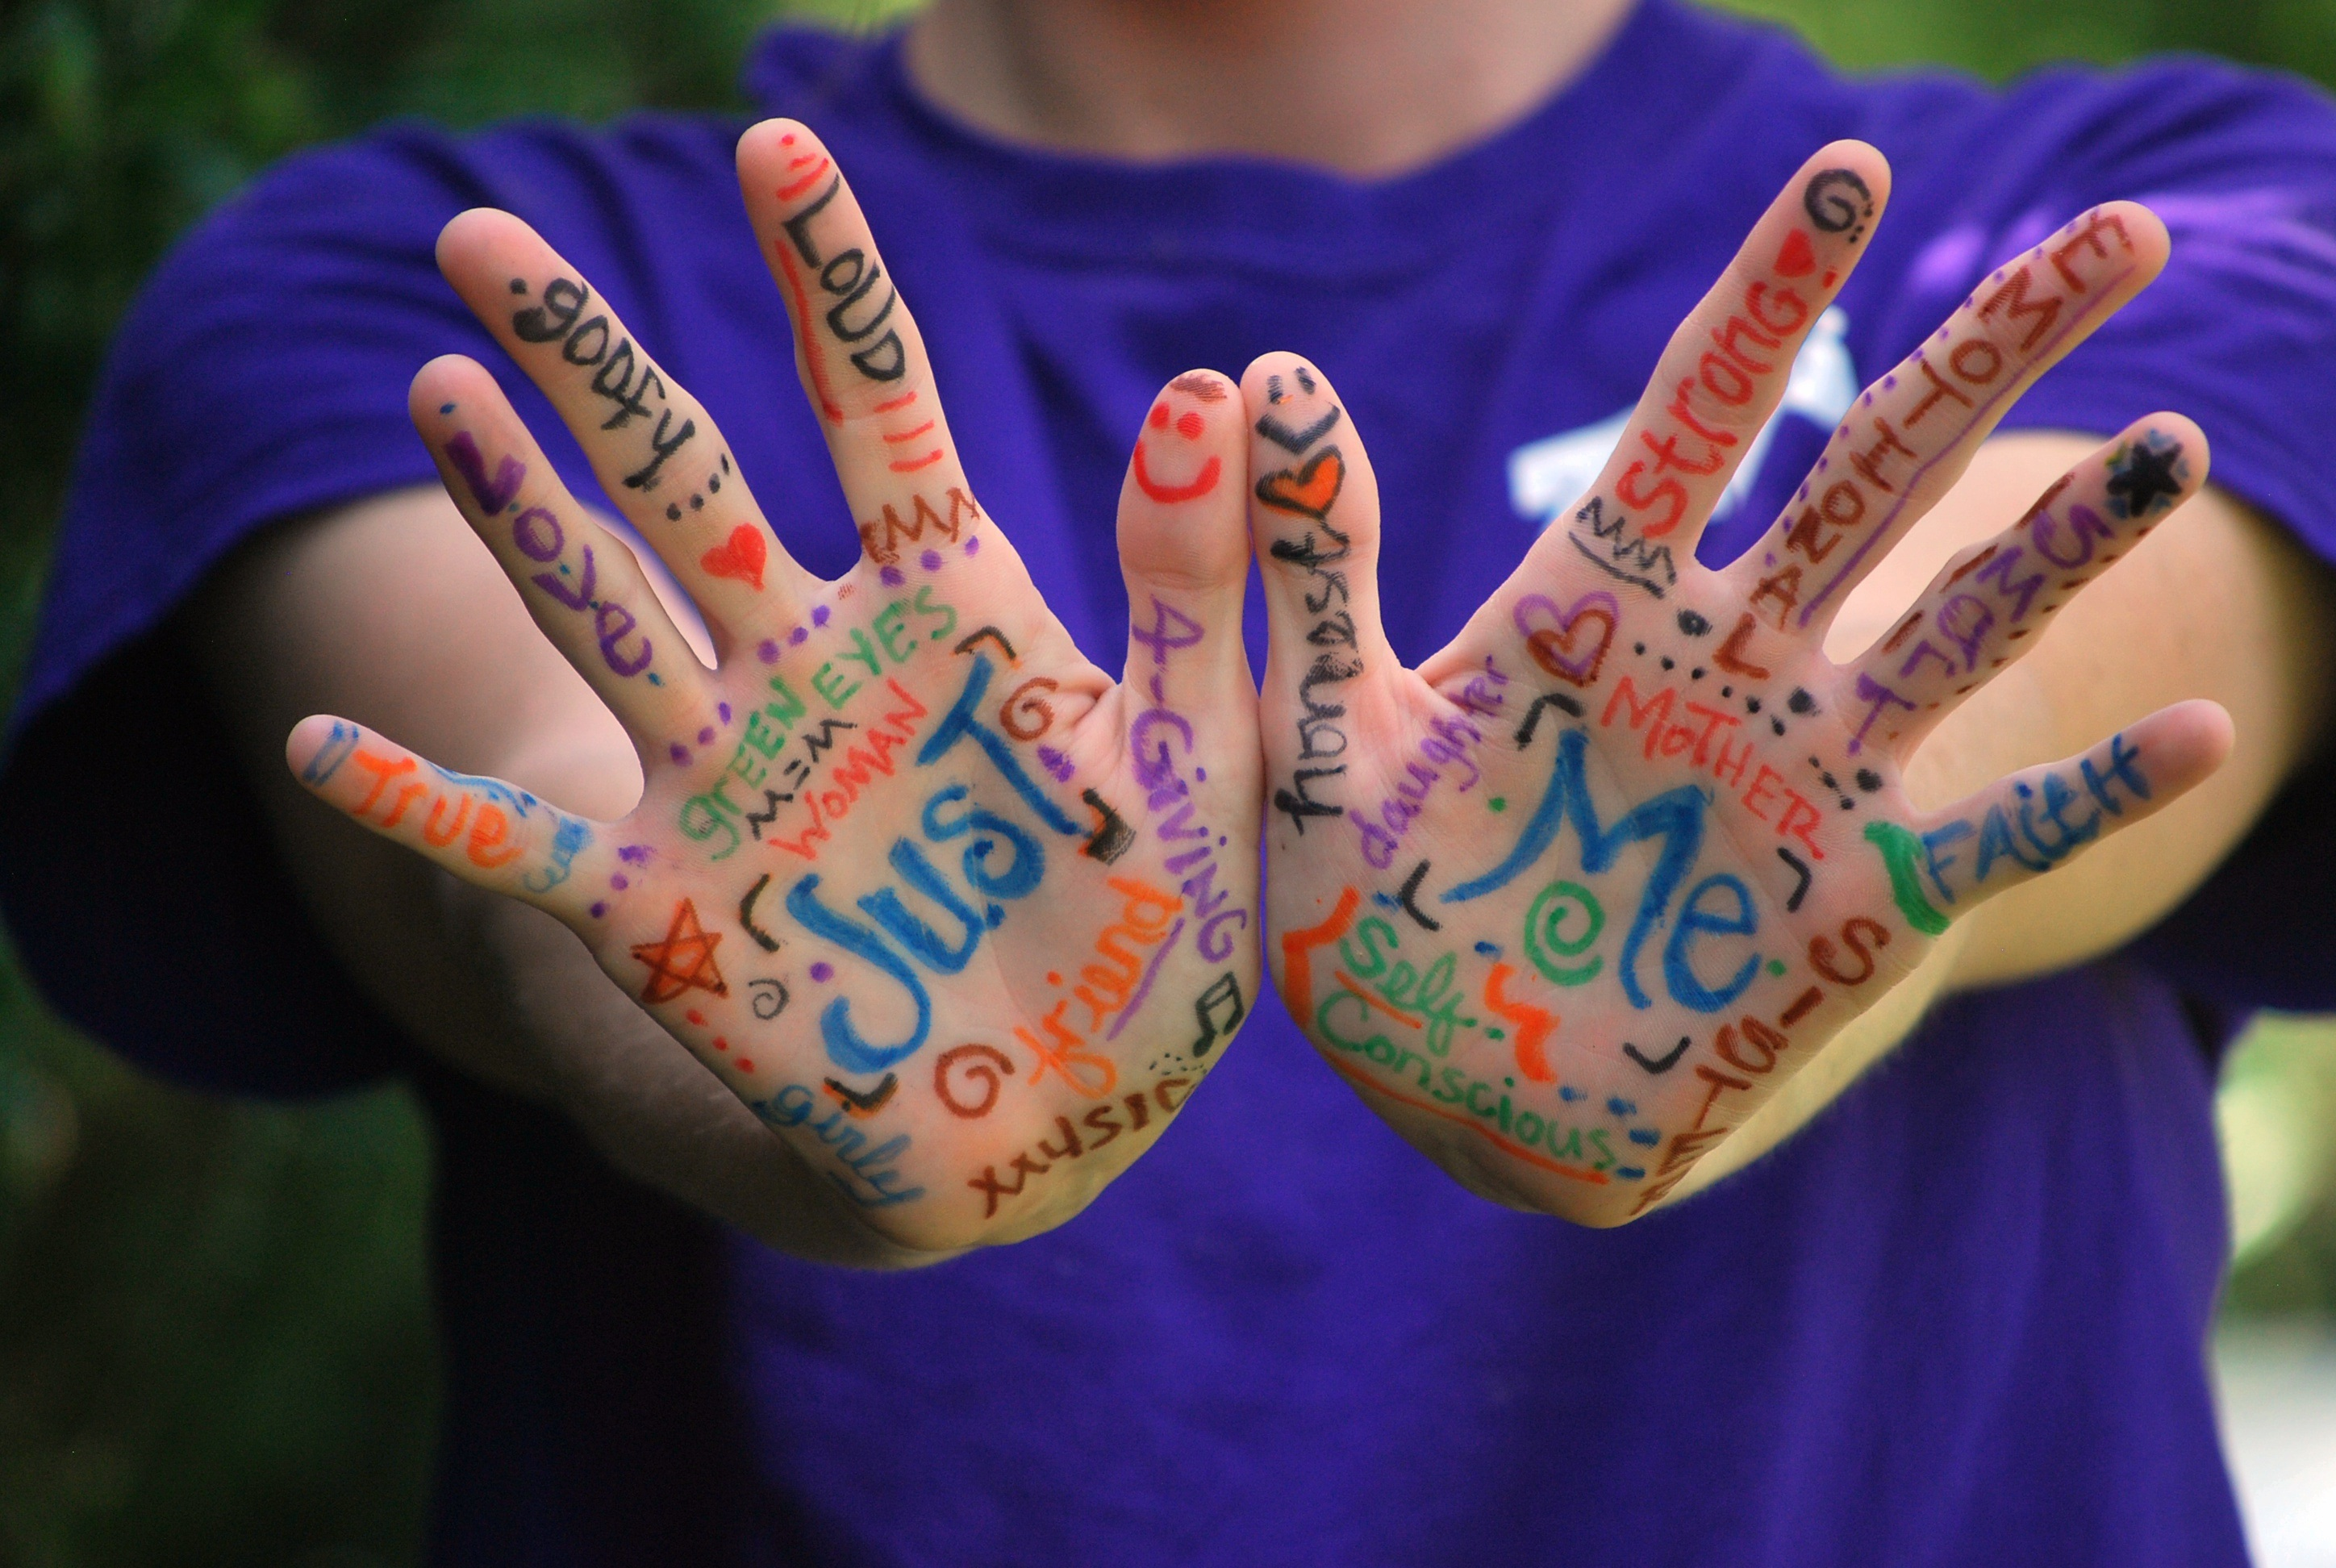 hands-words-meaning-fingers-52986